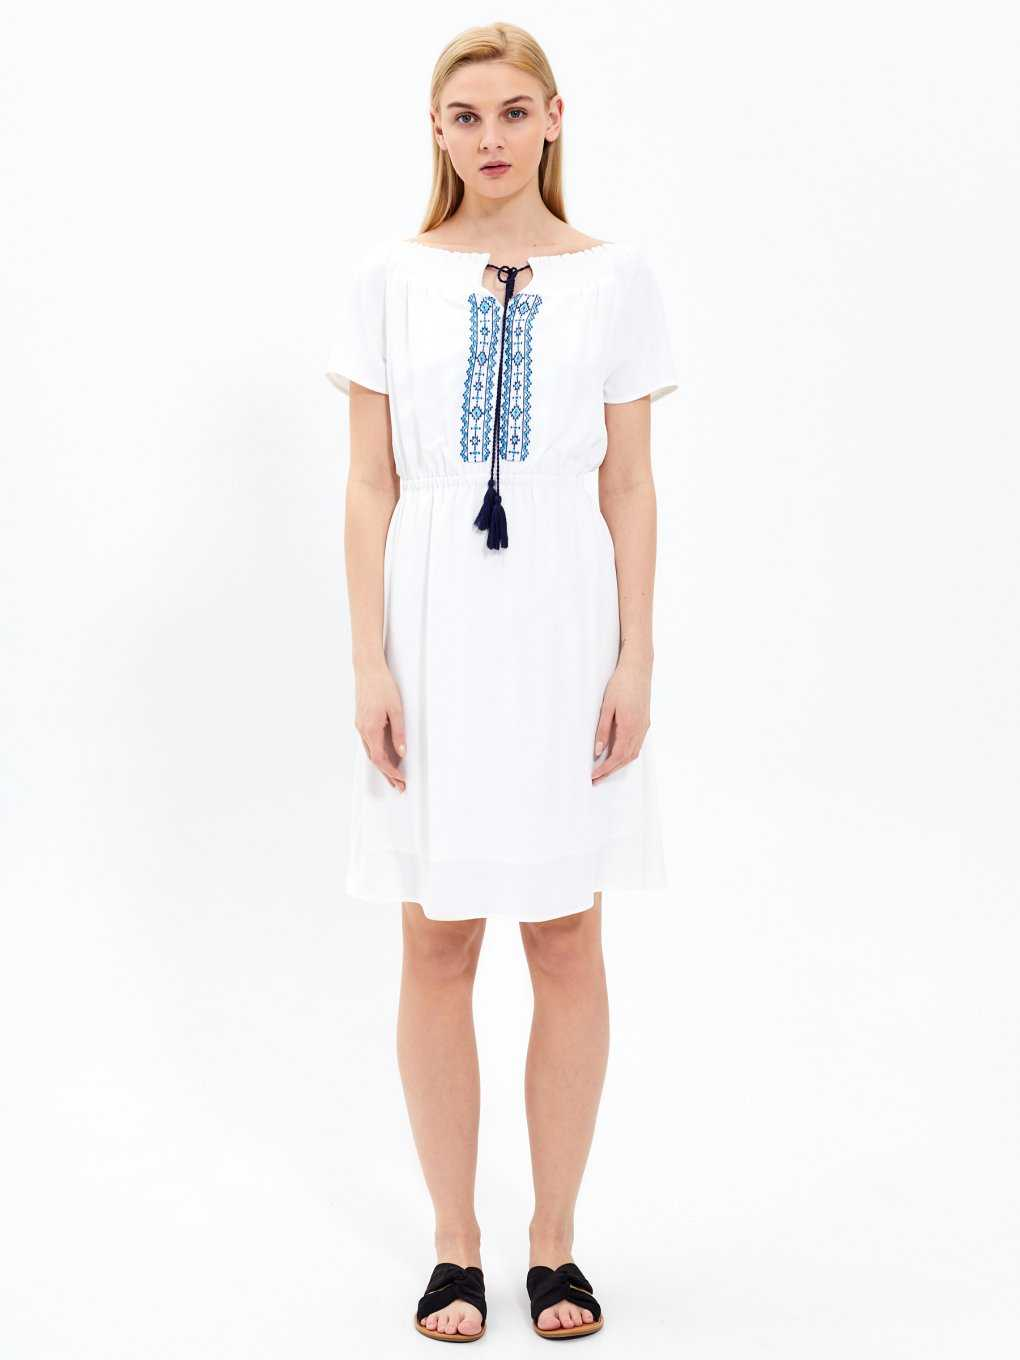 Lace-up dress with embroidery